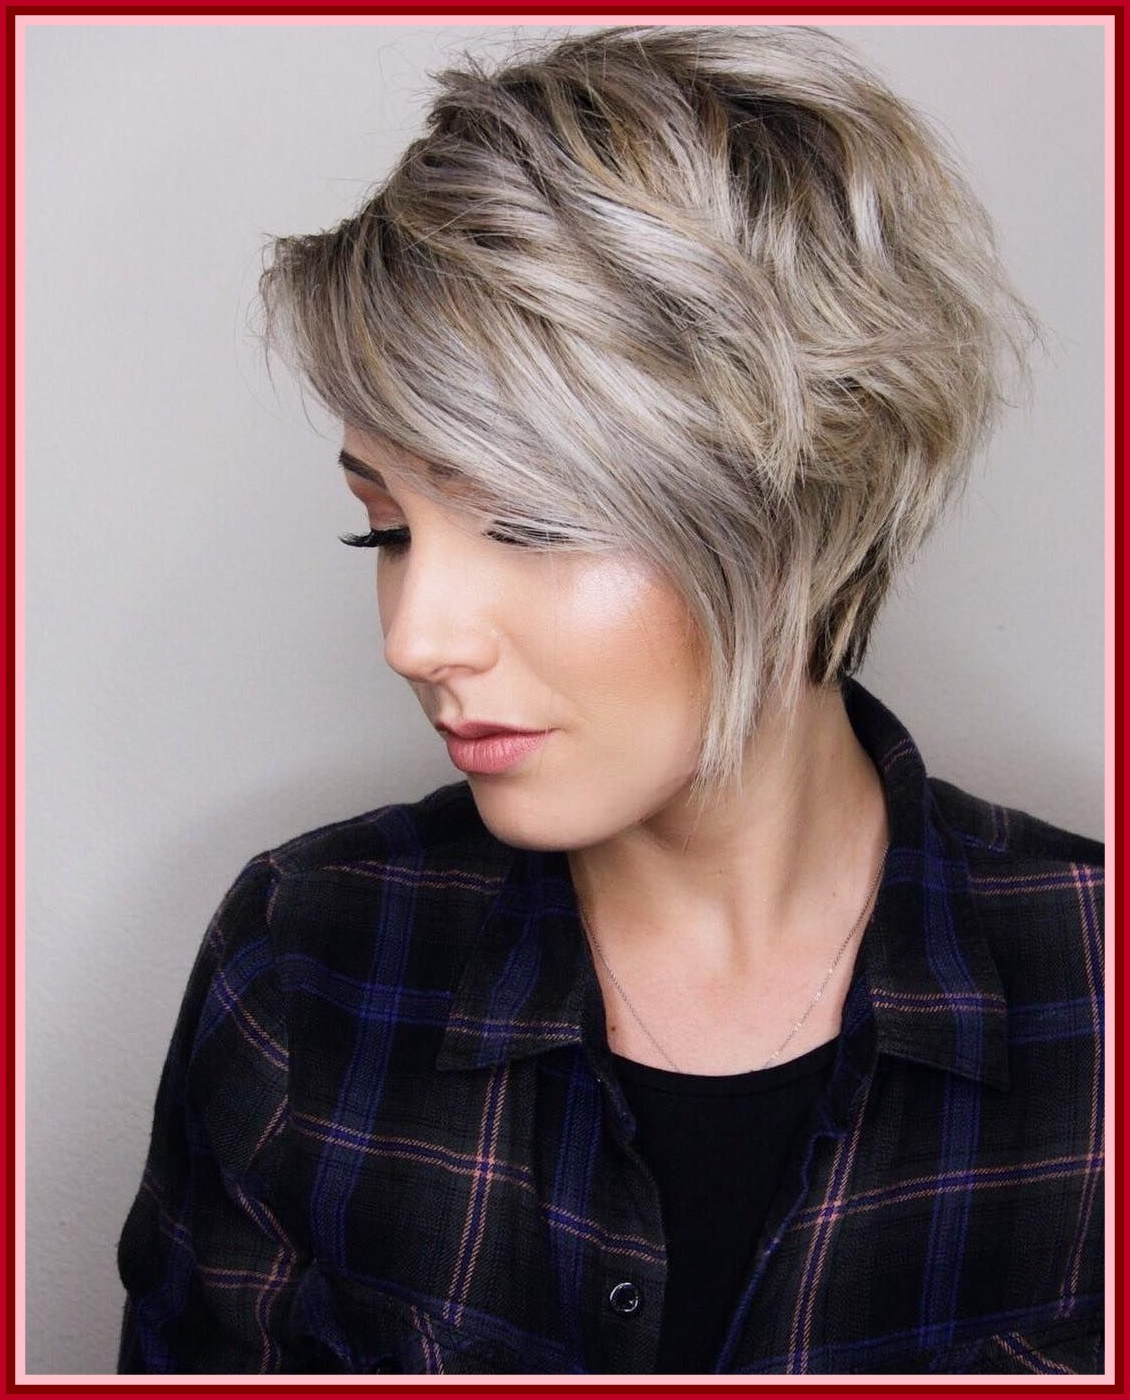 Short Hairstyles For Grey Hair 204042 Astonishing Best Short Intended For Gray Hair Short Hairstyles (View 24 of 25)